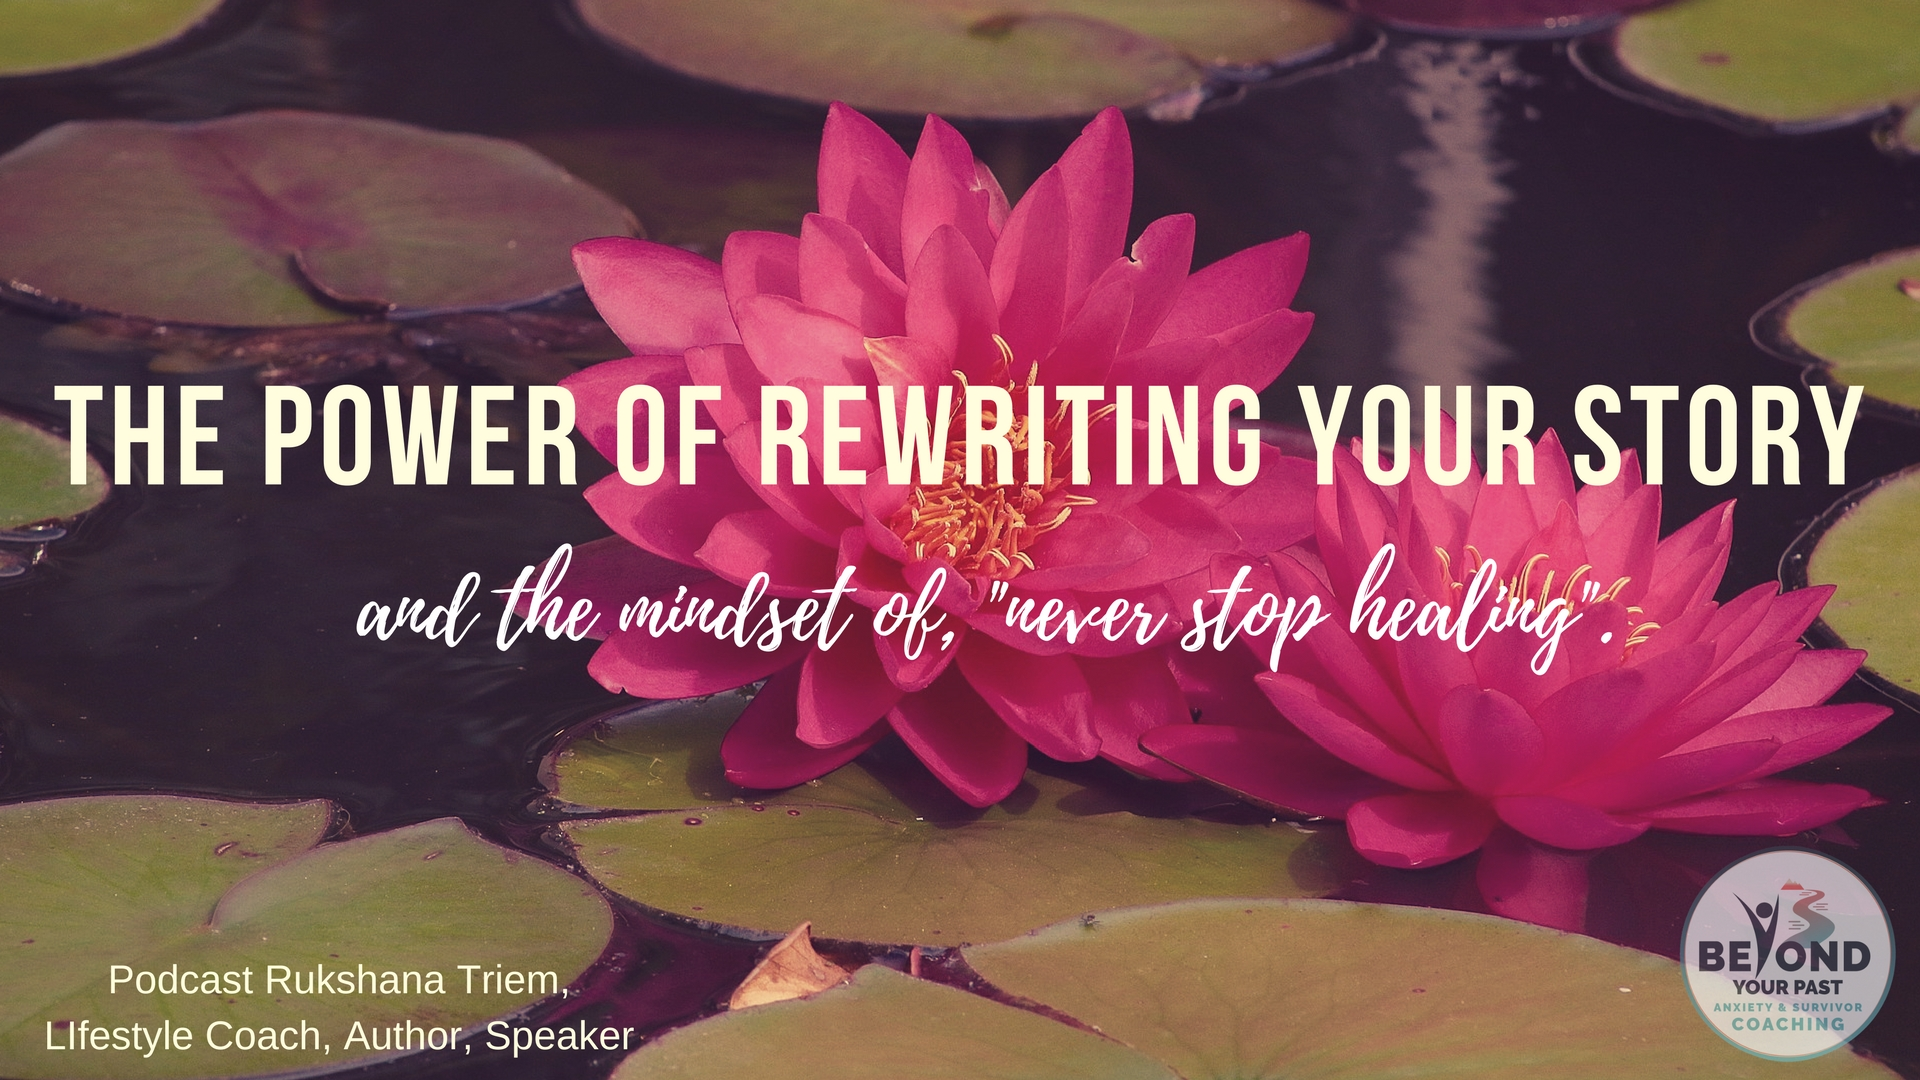 The Power of rewriting your story - with Rukshana Triem